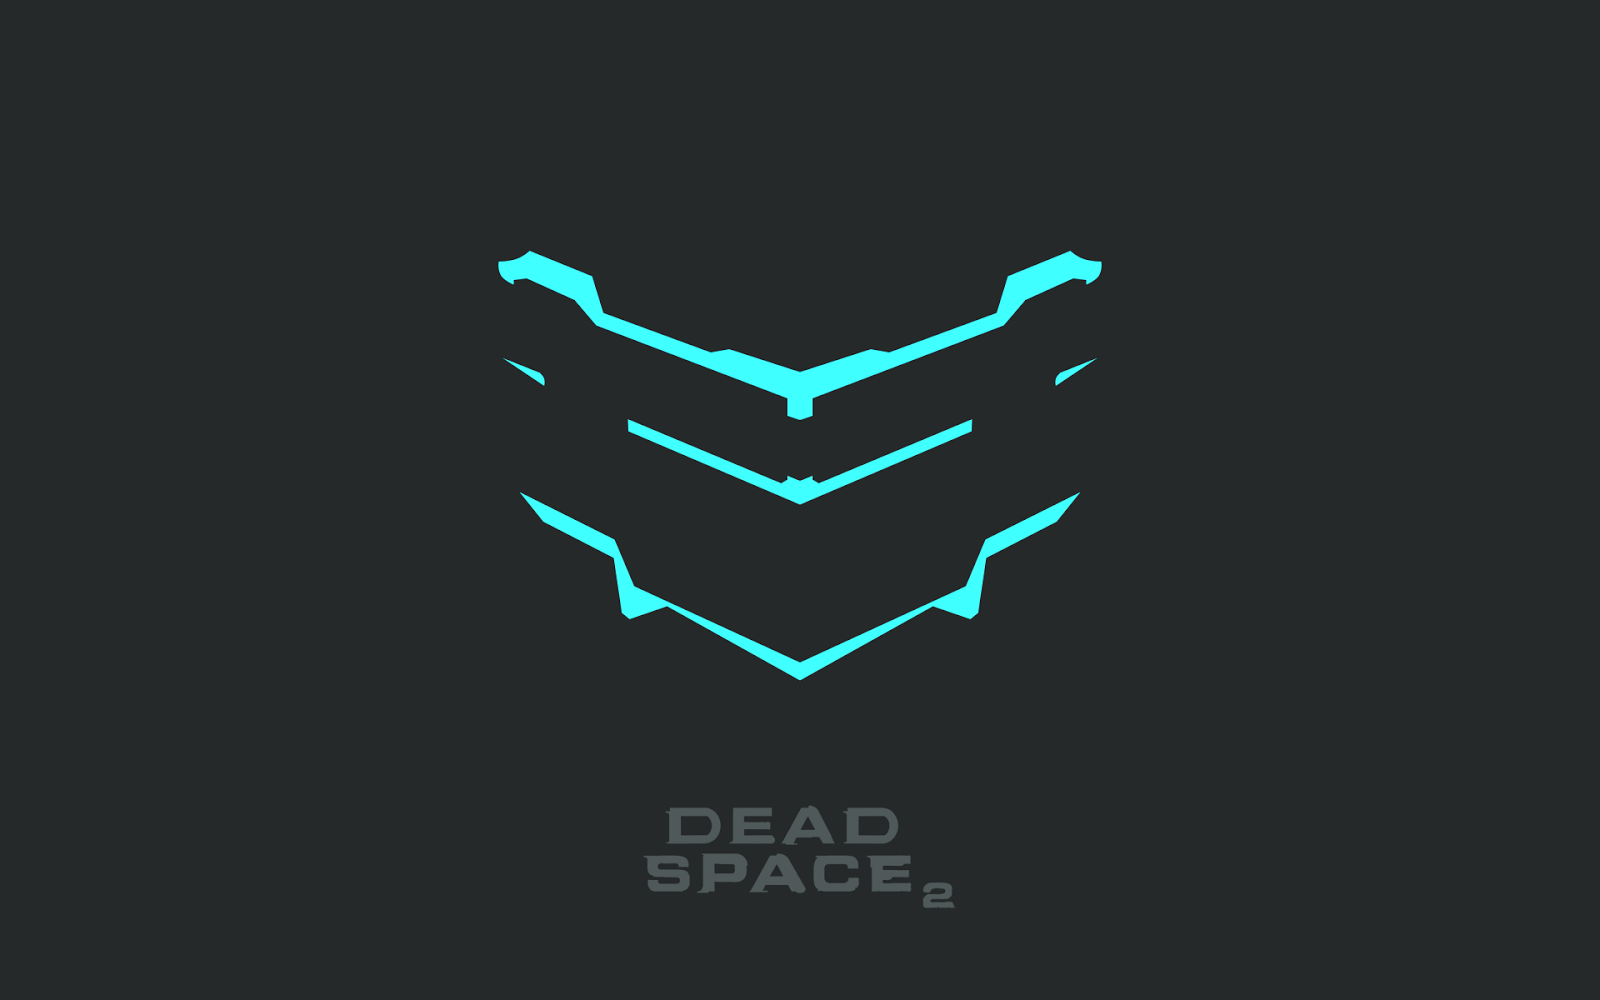 Tubesalonika: Dead Space 2 wallpaper HD